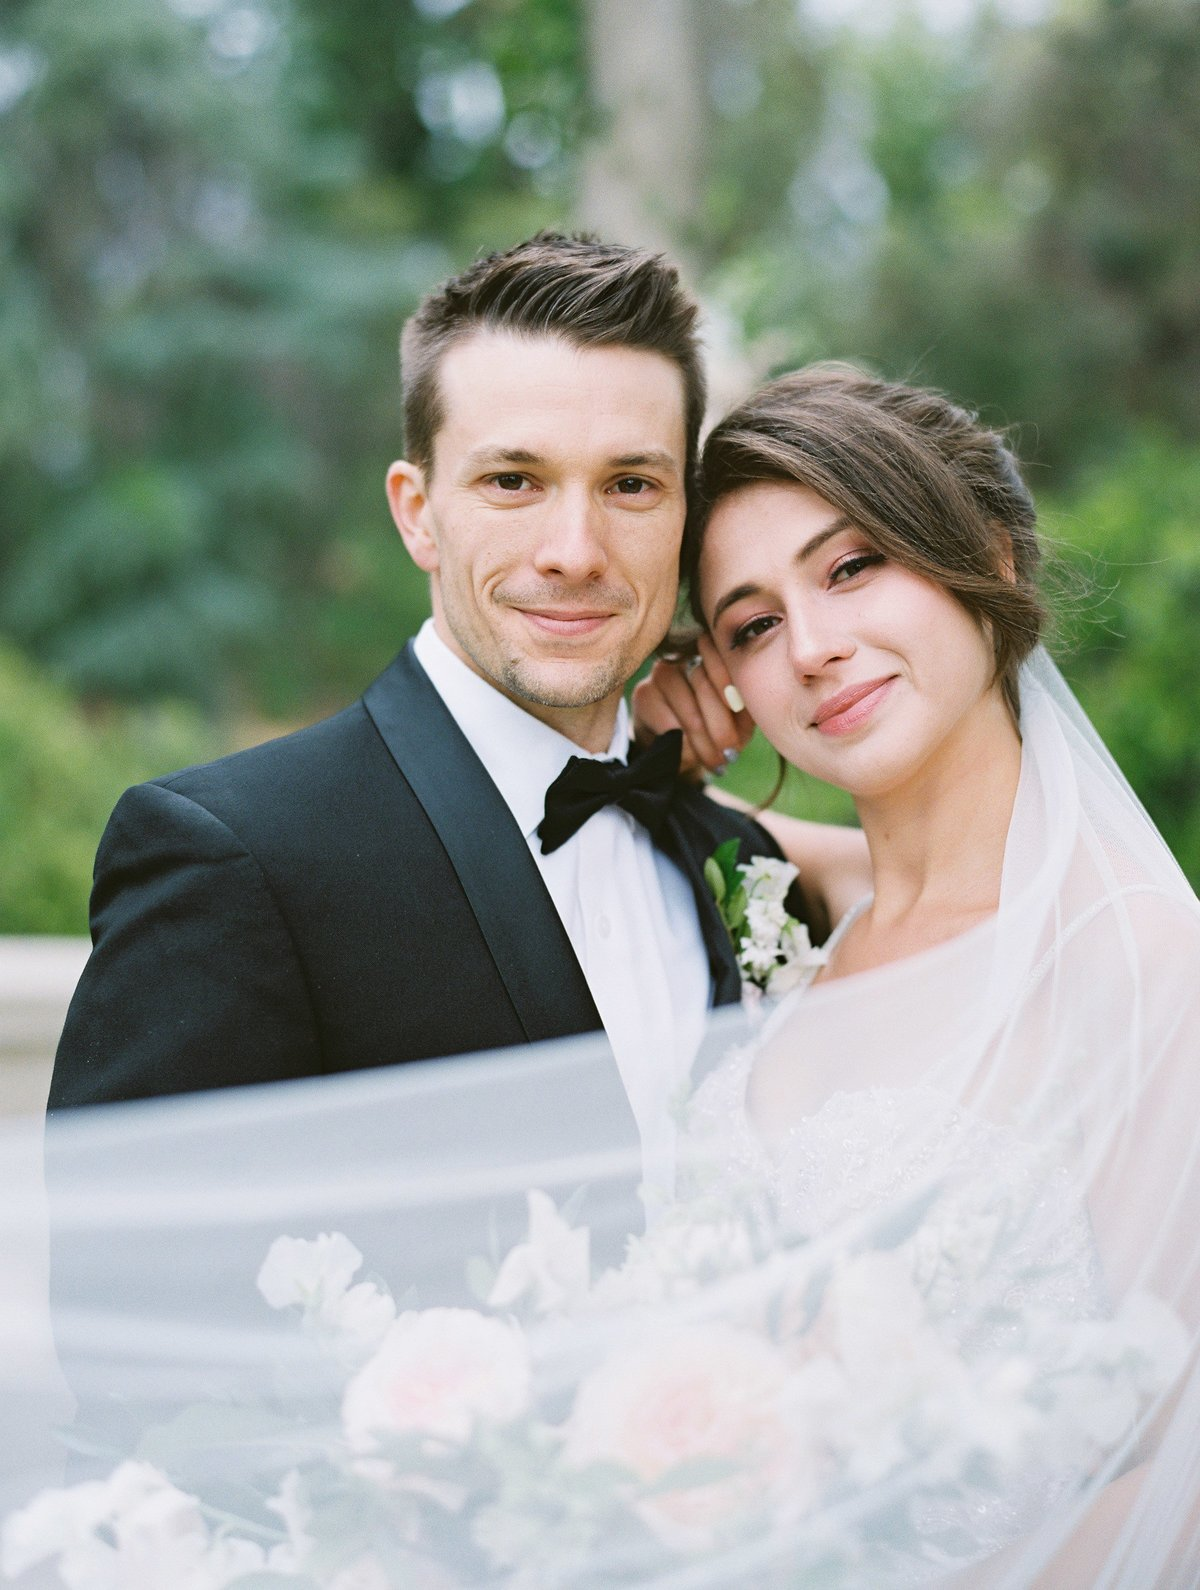 daniel-and-bethany-weddings-long-veil